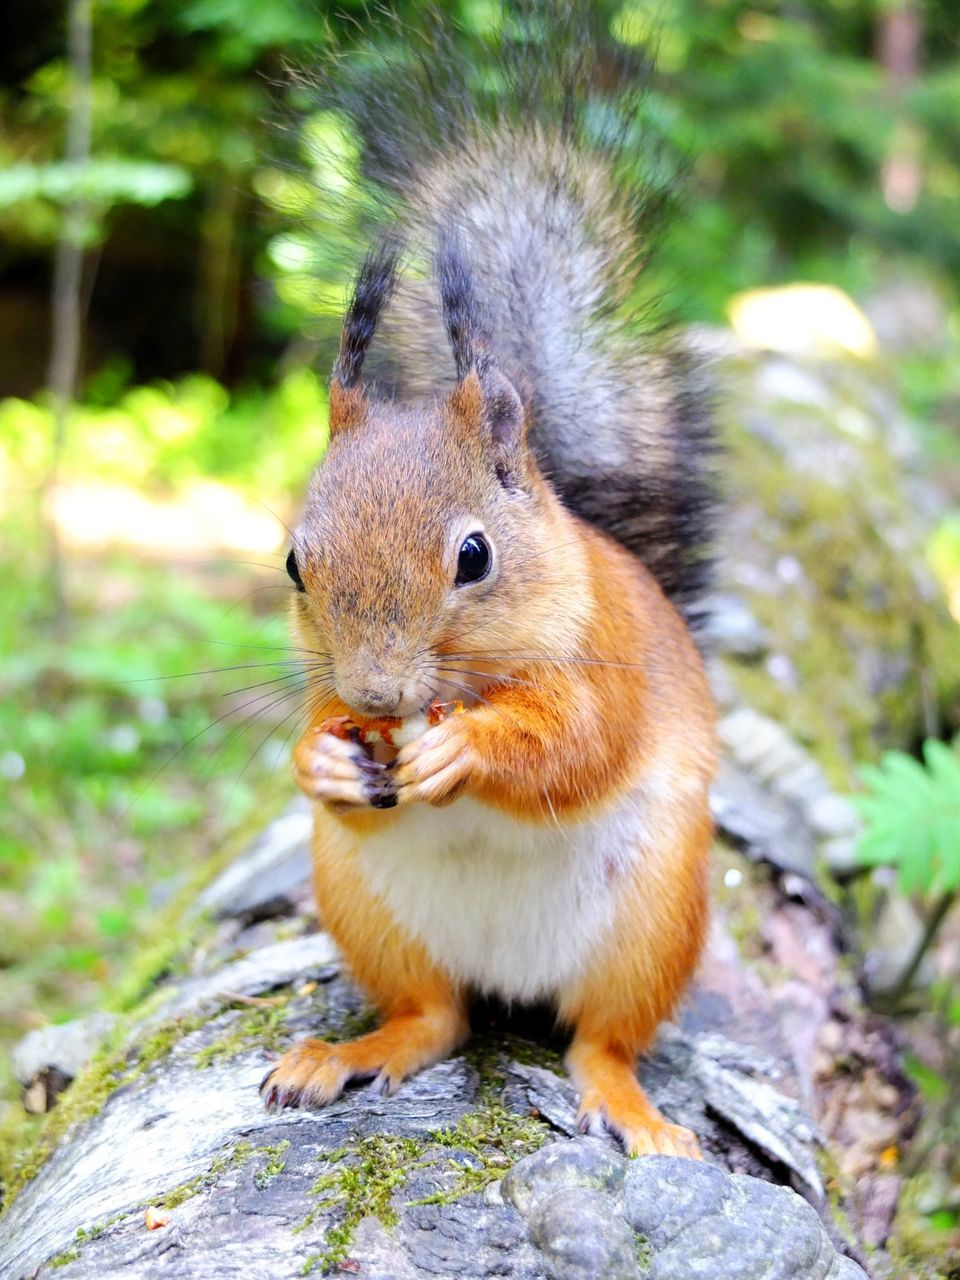 squirrel, one animal, animals in the wild, animal themes, mammal, outdoors, animal wildlife, day, nature, eating, focus on foreground, no people, food, close-up